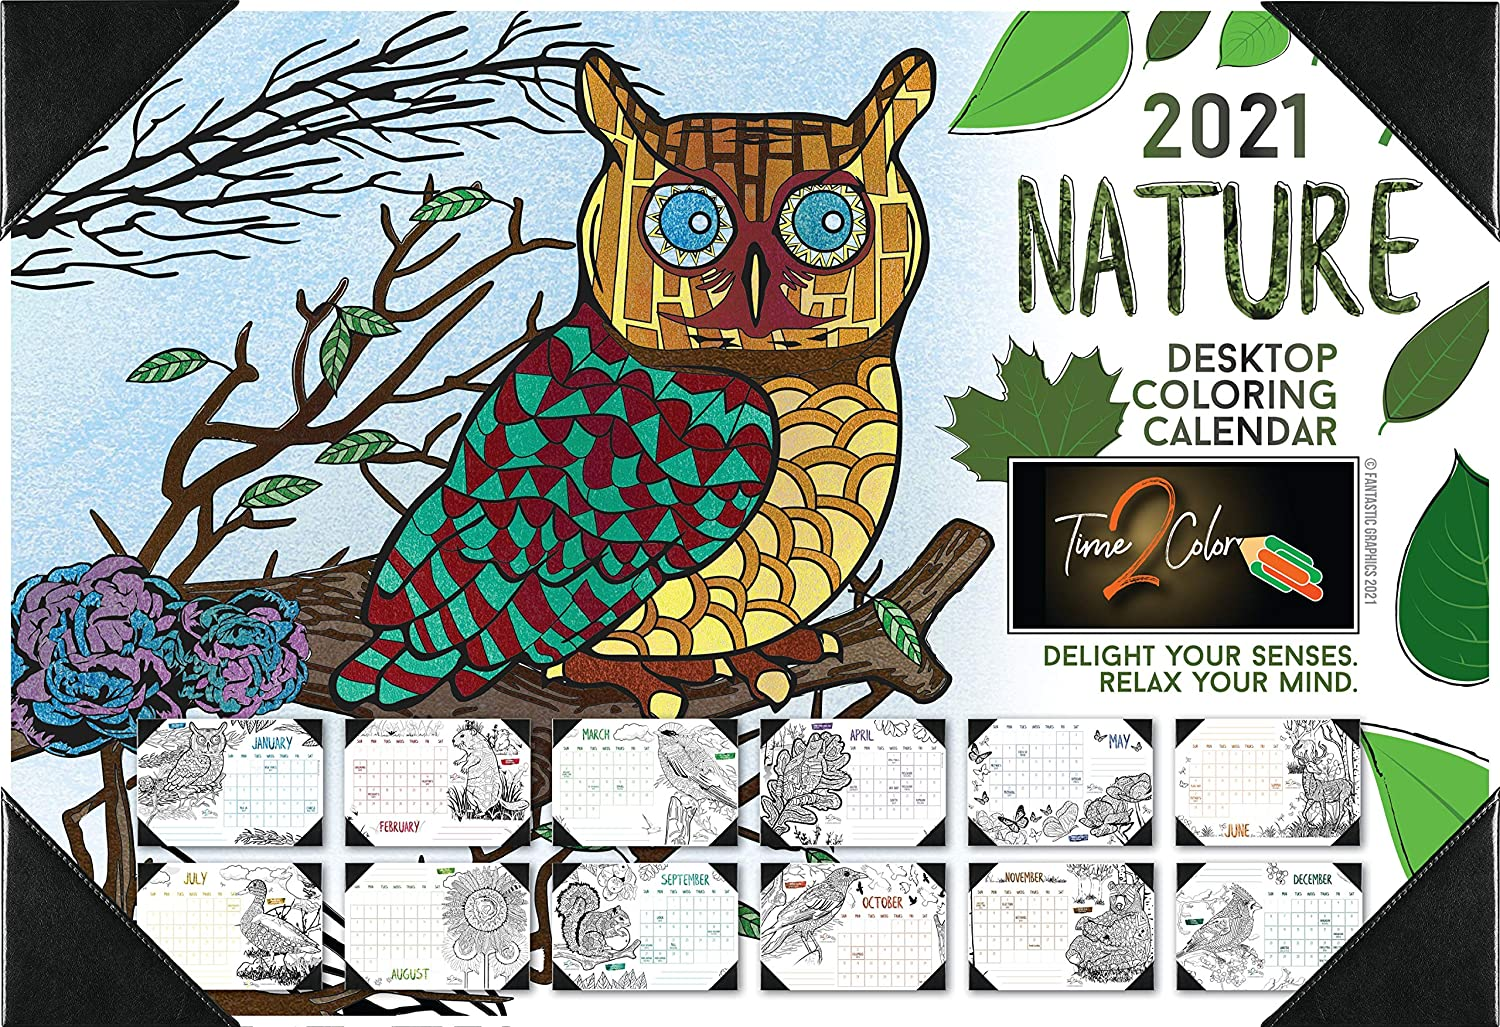 Time2Color 2021 Nature Theme Desk Blotter Coloring Calendar: January to December (13